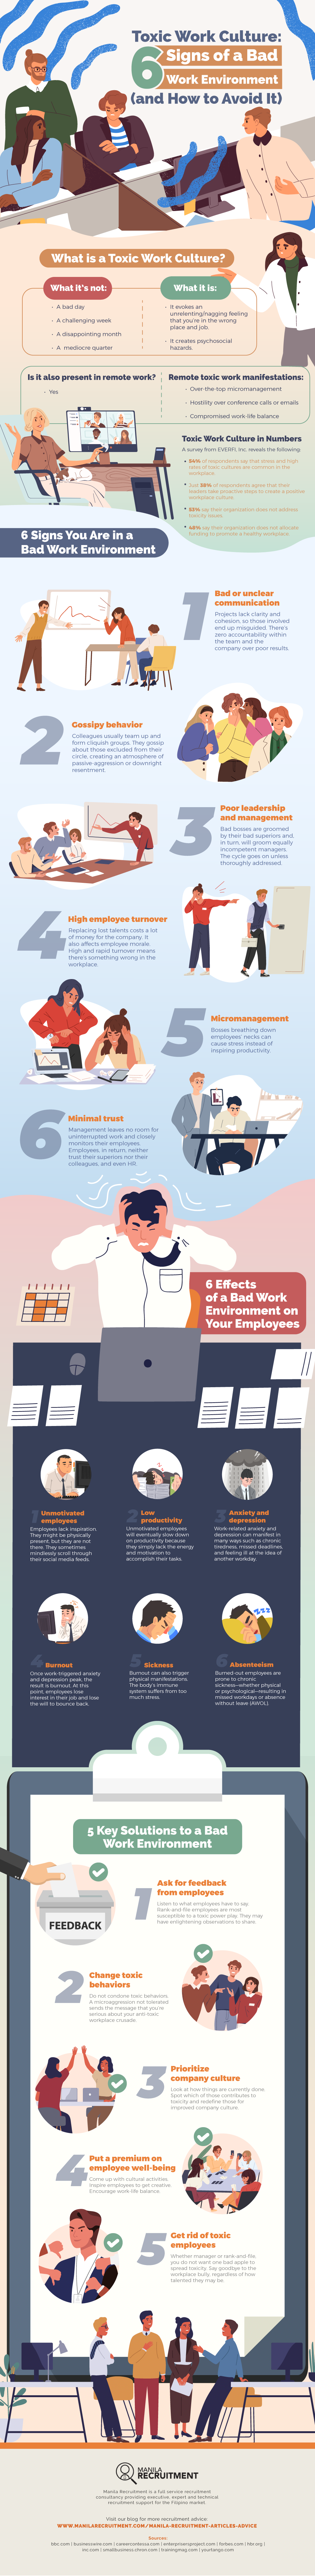 Toxic Work Culture: 6 Signs of a Bad Work Environment (and How to Avoid It)